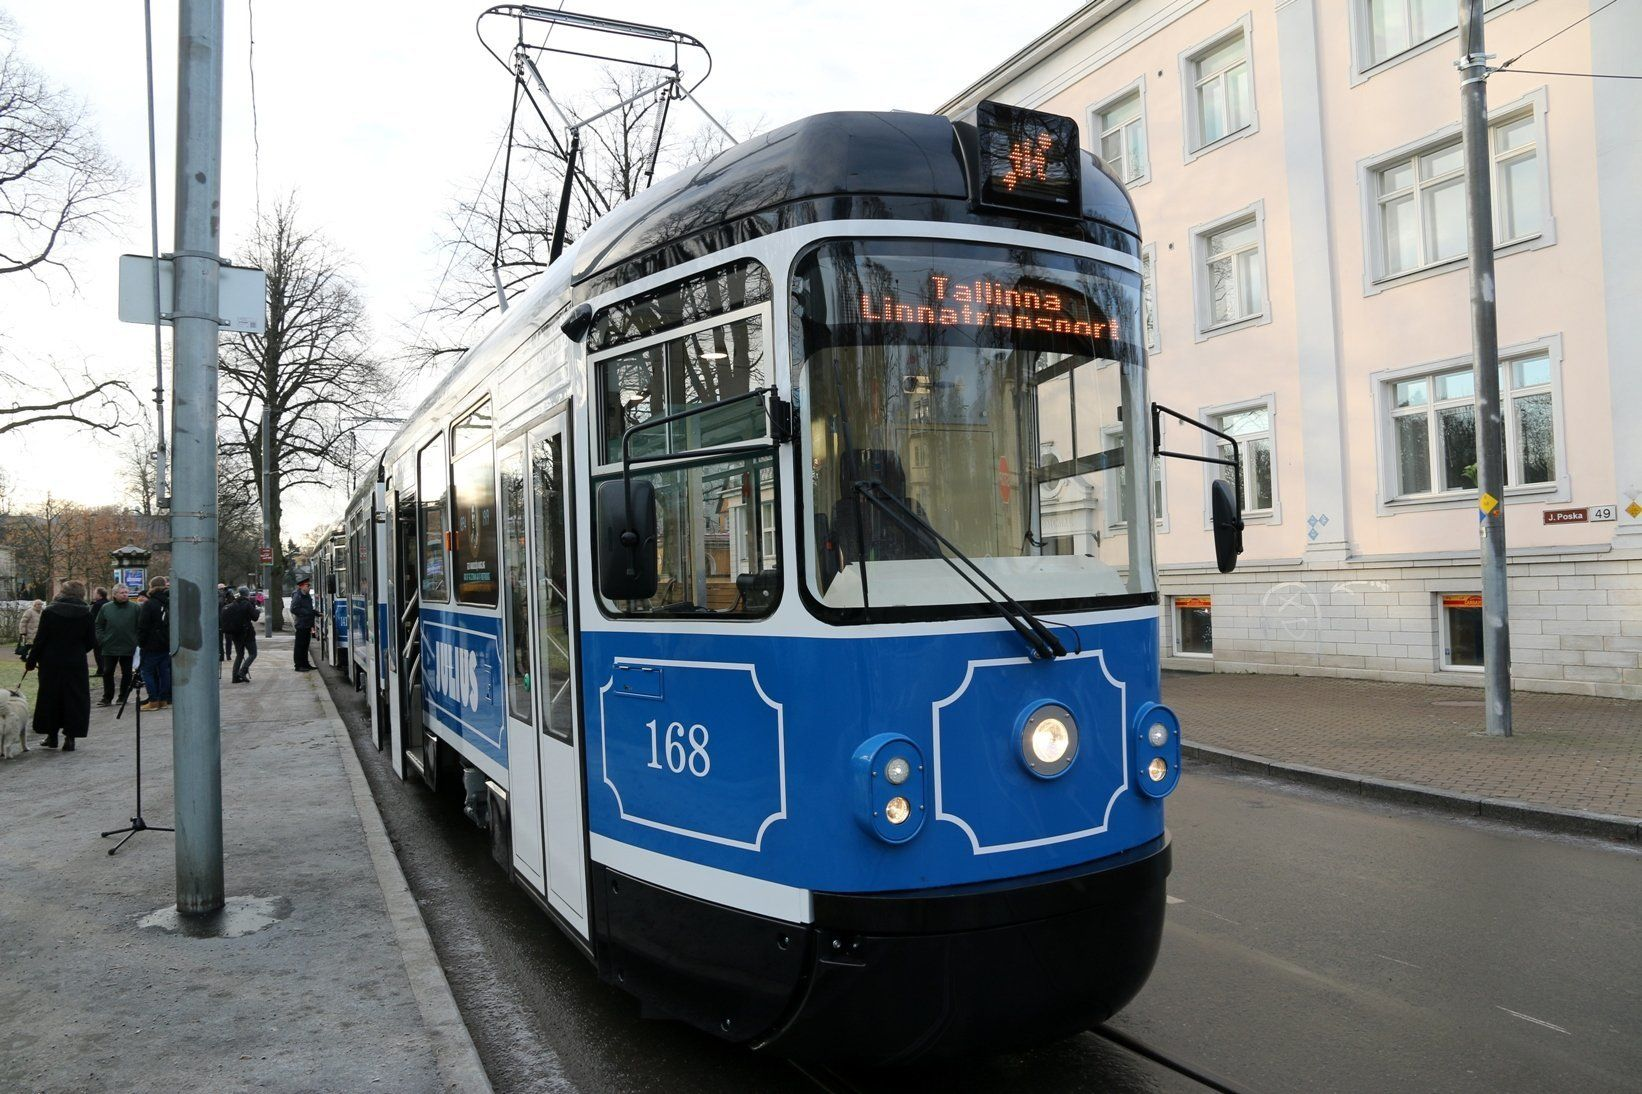 A tram in Tallinn where public transport is free for city residents